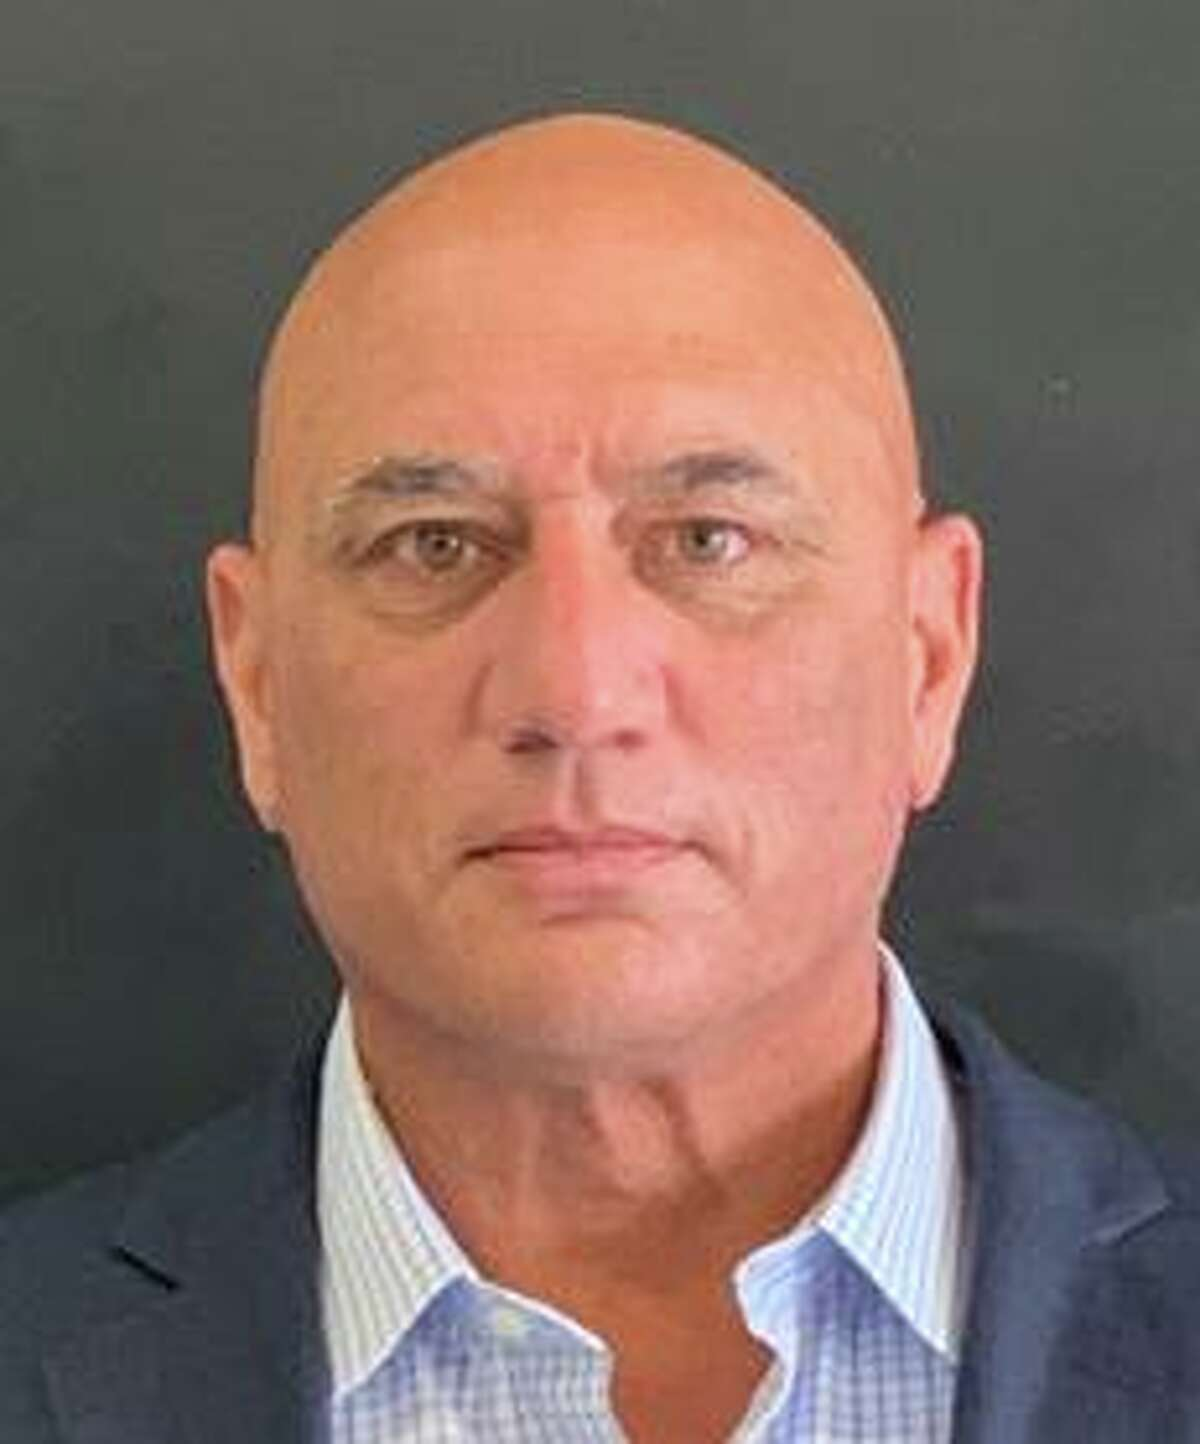 Emmet Hibson, the former Human Resources Director for the Town of Fairfield, was arrested by Fairfield Police and charged with illegal disposal of PCB's, and conspiracy to commit illegal disposal of PCB's.